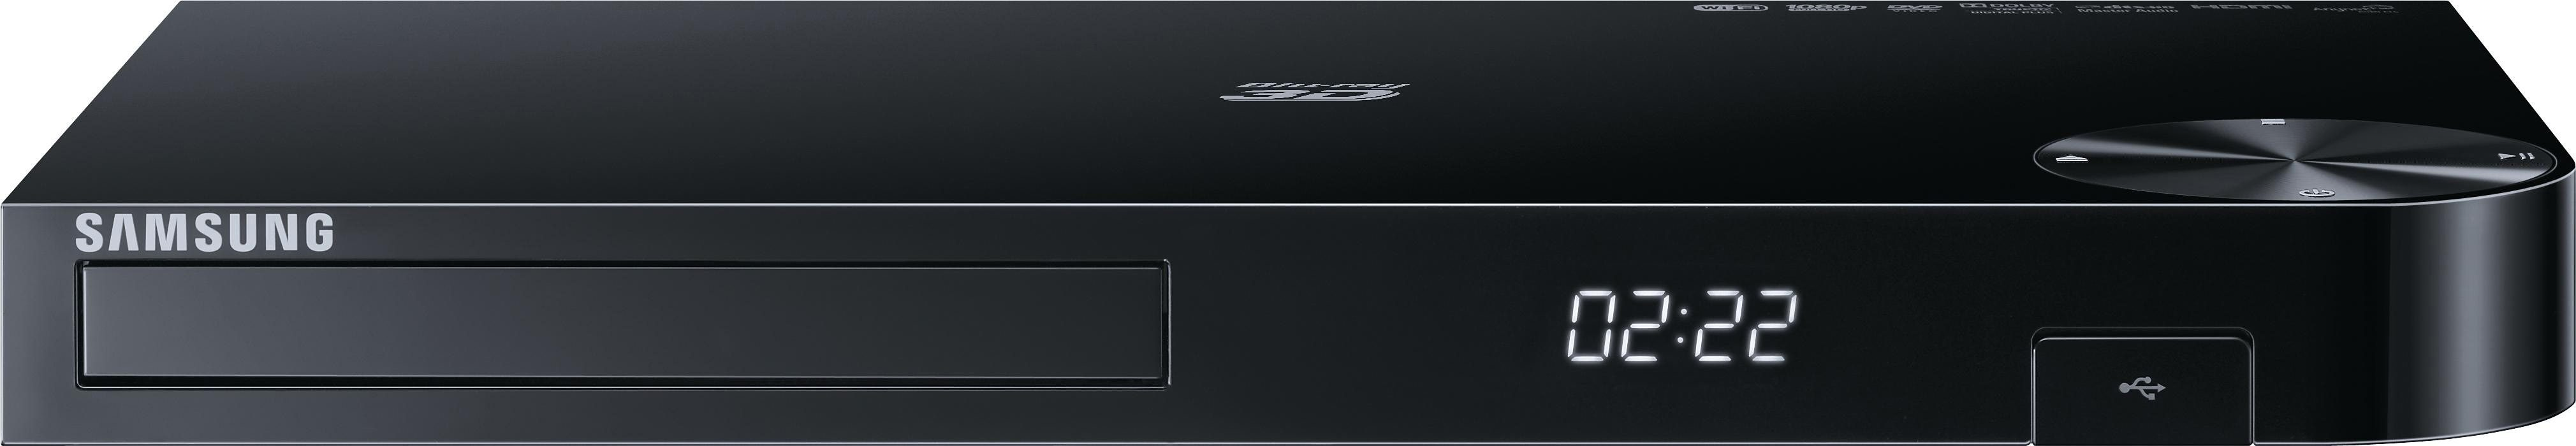 Samsung BD-H6500/EN 3D Blu-ray-Player, 3D-fähig, 1080p (Full HD), WLAN